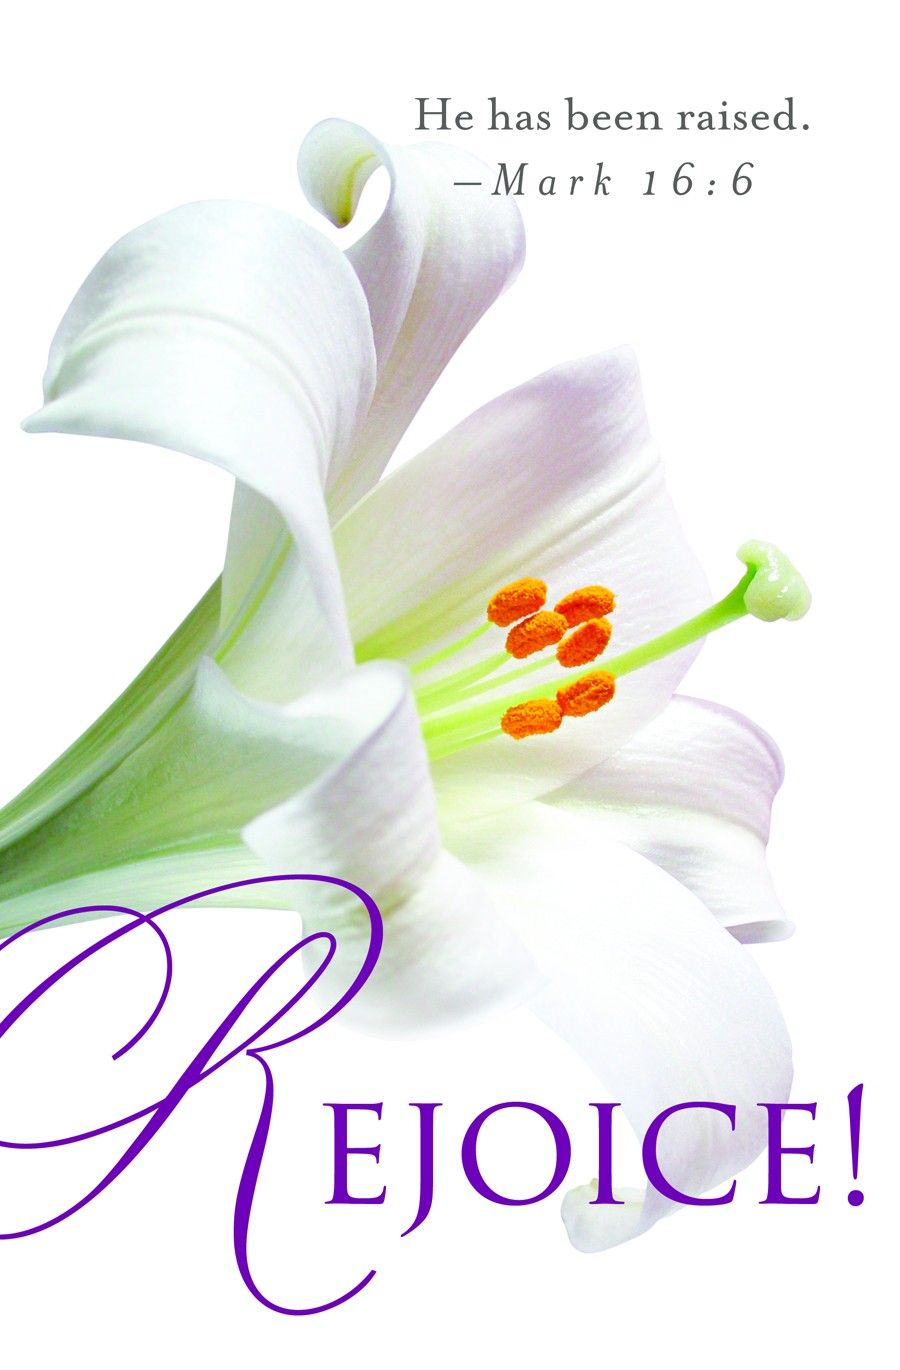 Religious Easter Drawings | Religious Easter Sunday Clip Art ...